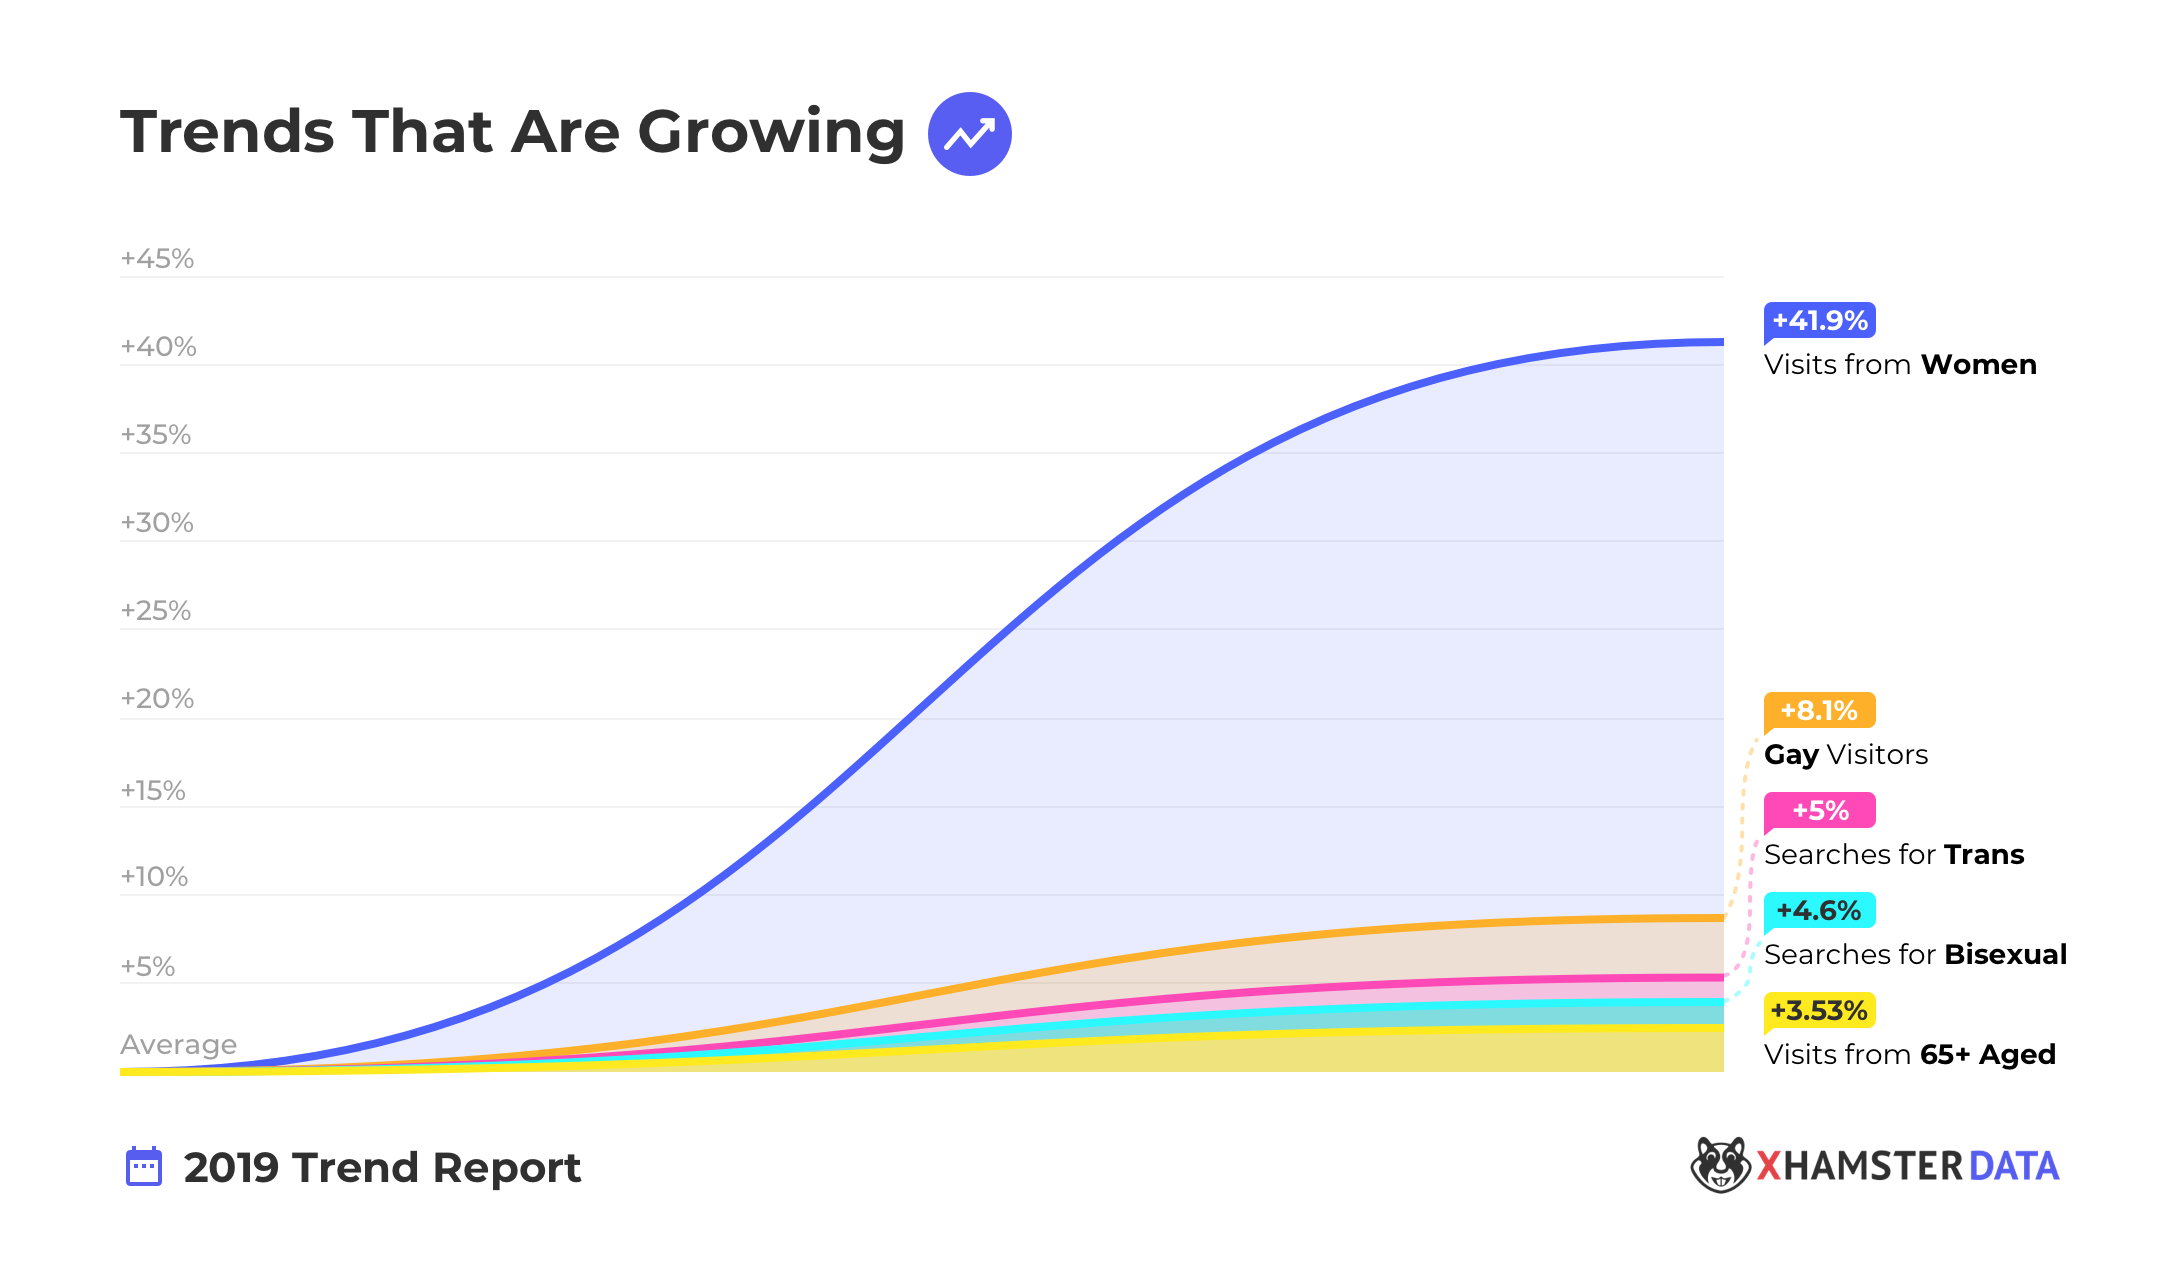 The Official xHamster 2019 Trend Report